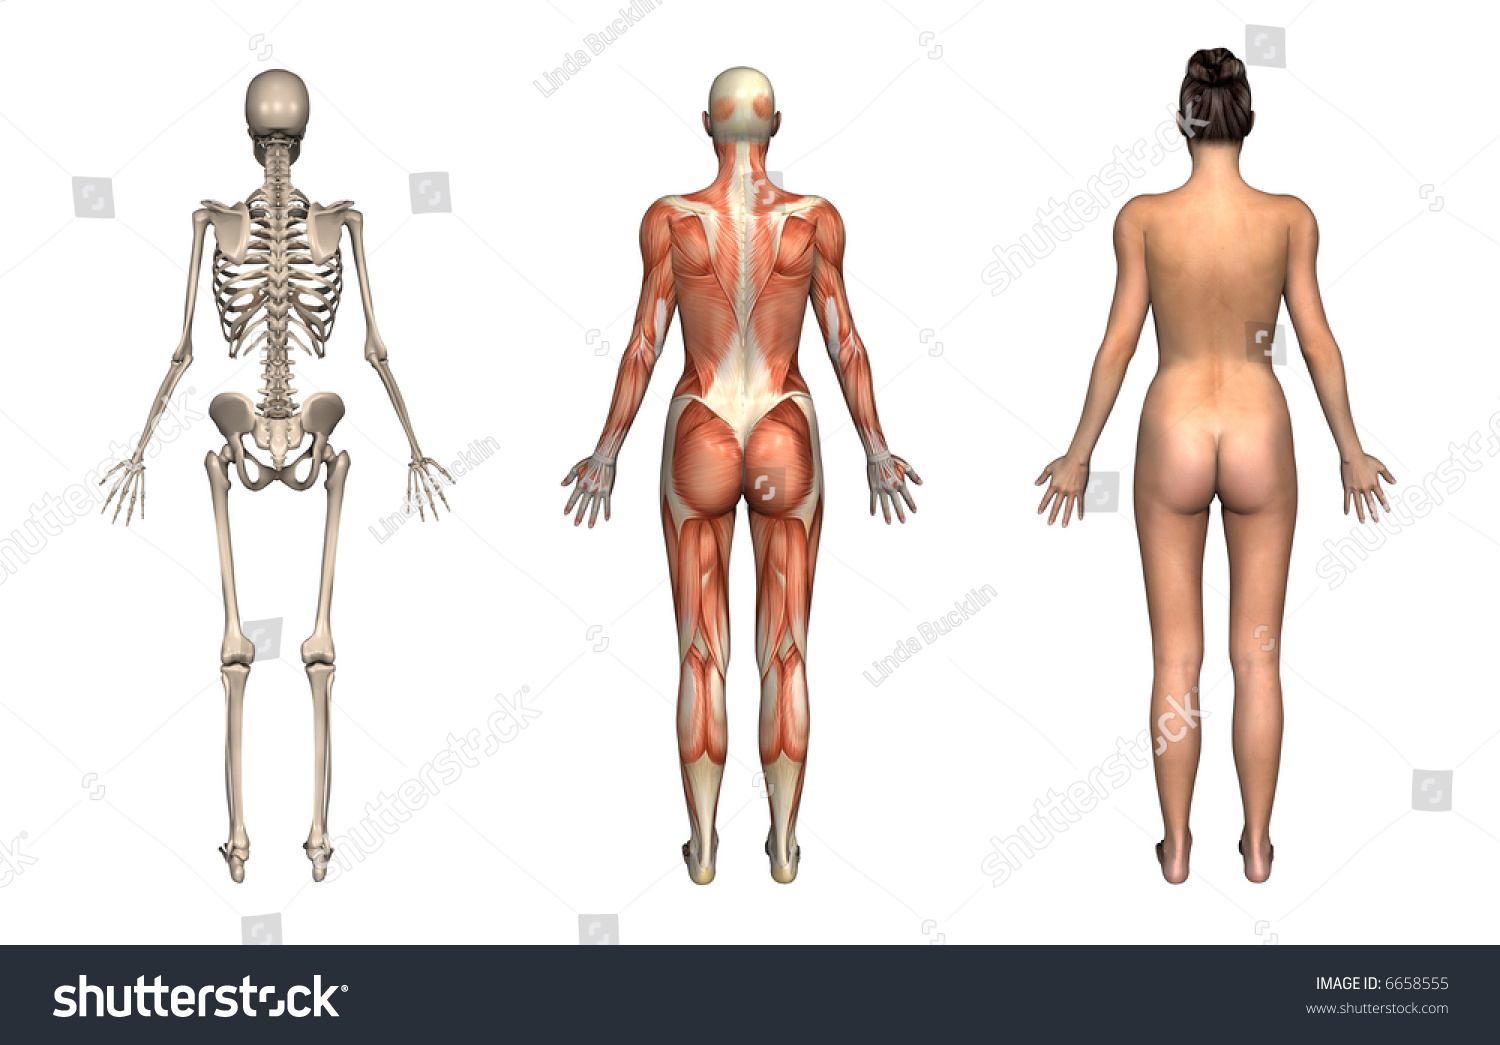 Anatomical Overlays Female Back View These Stock Illustration ...